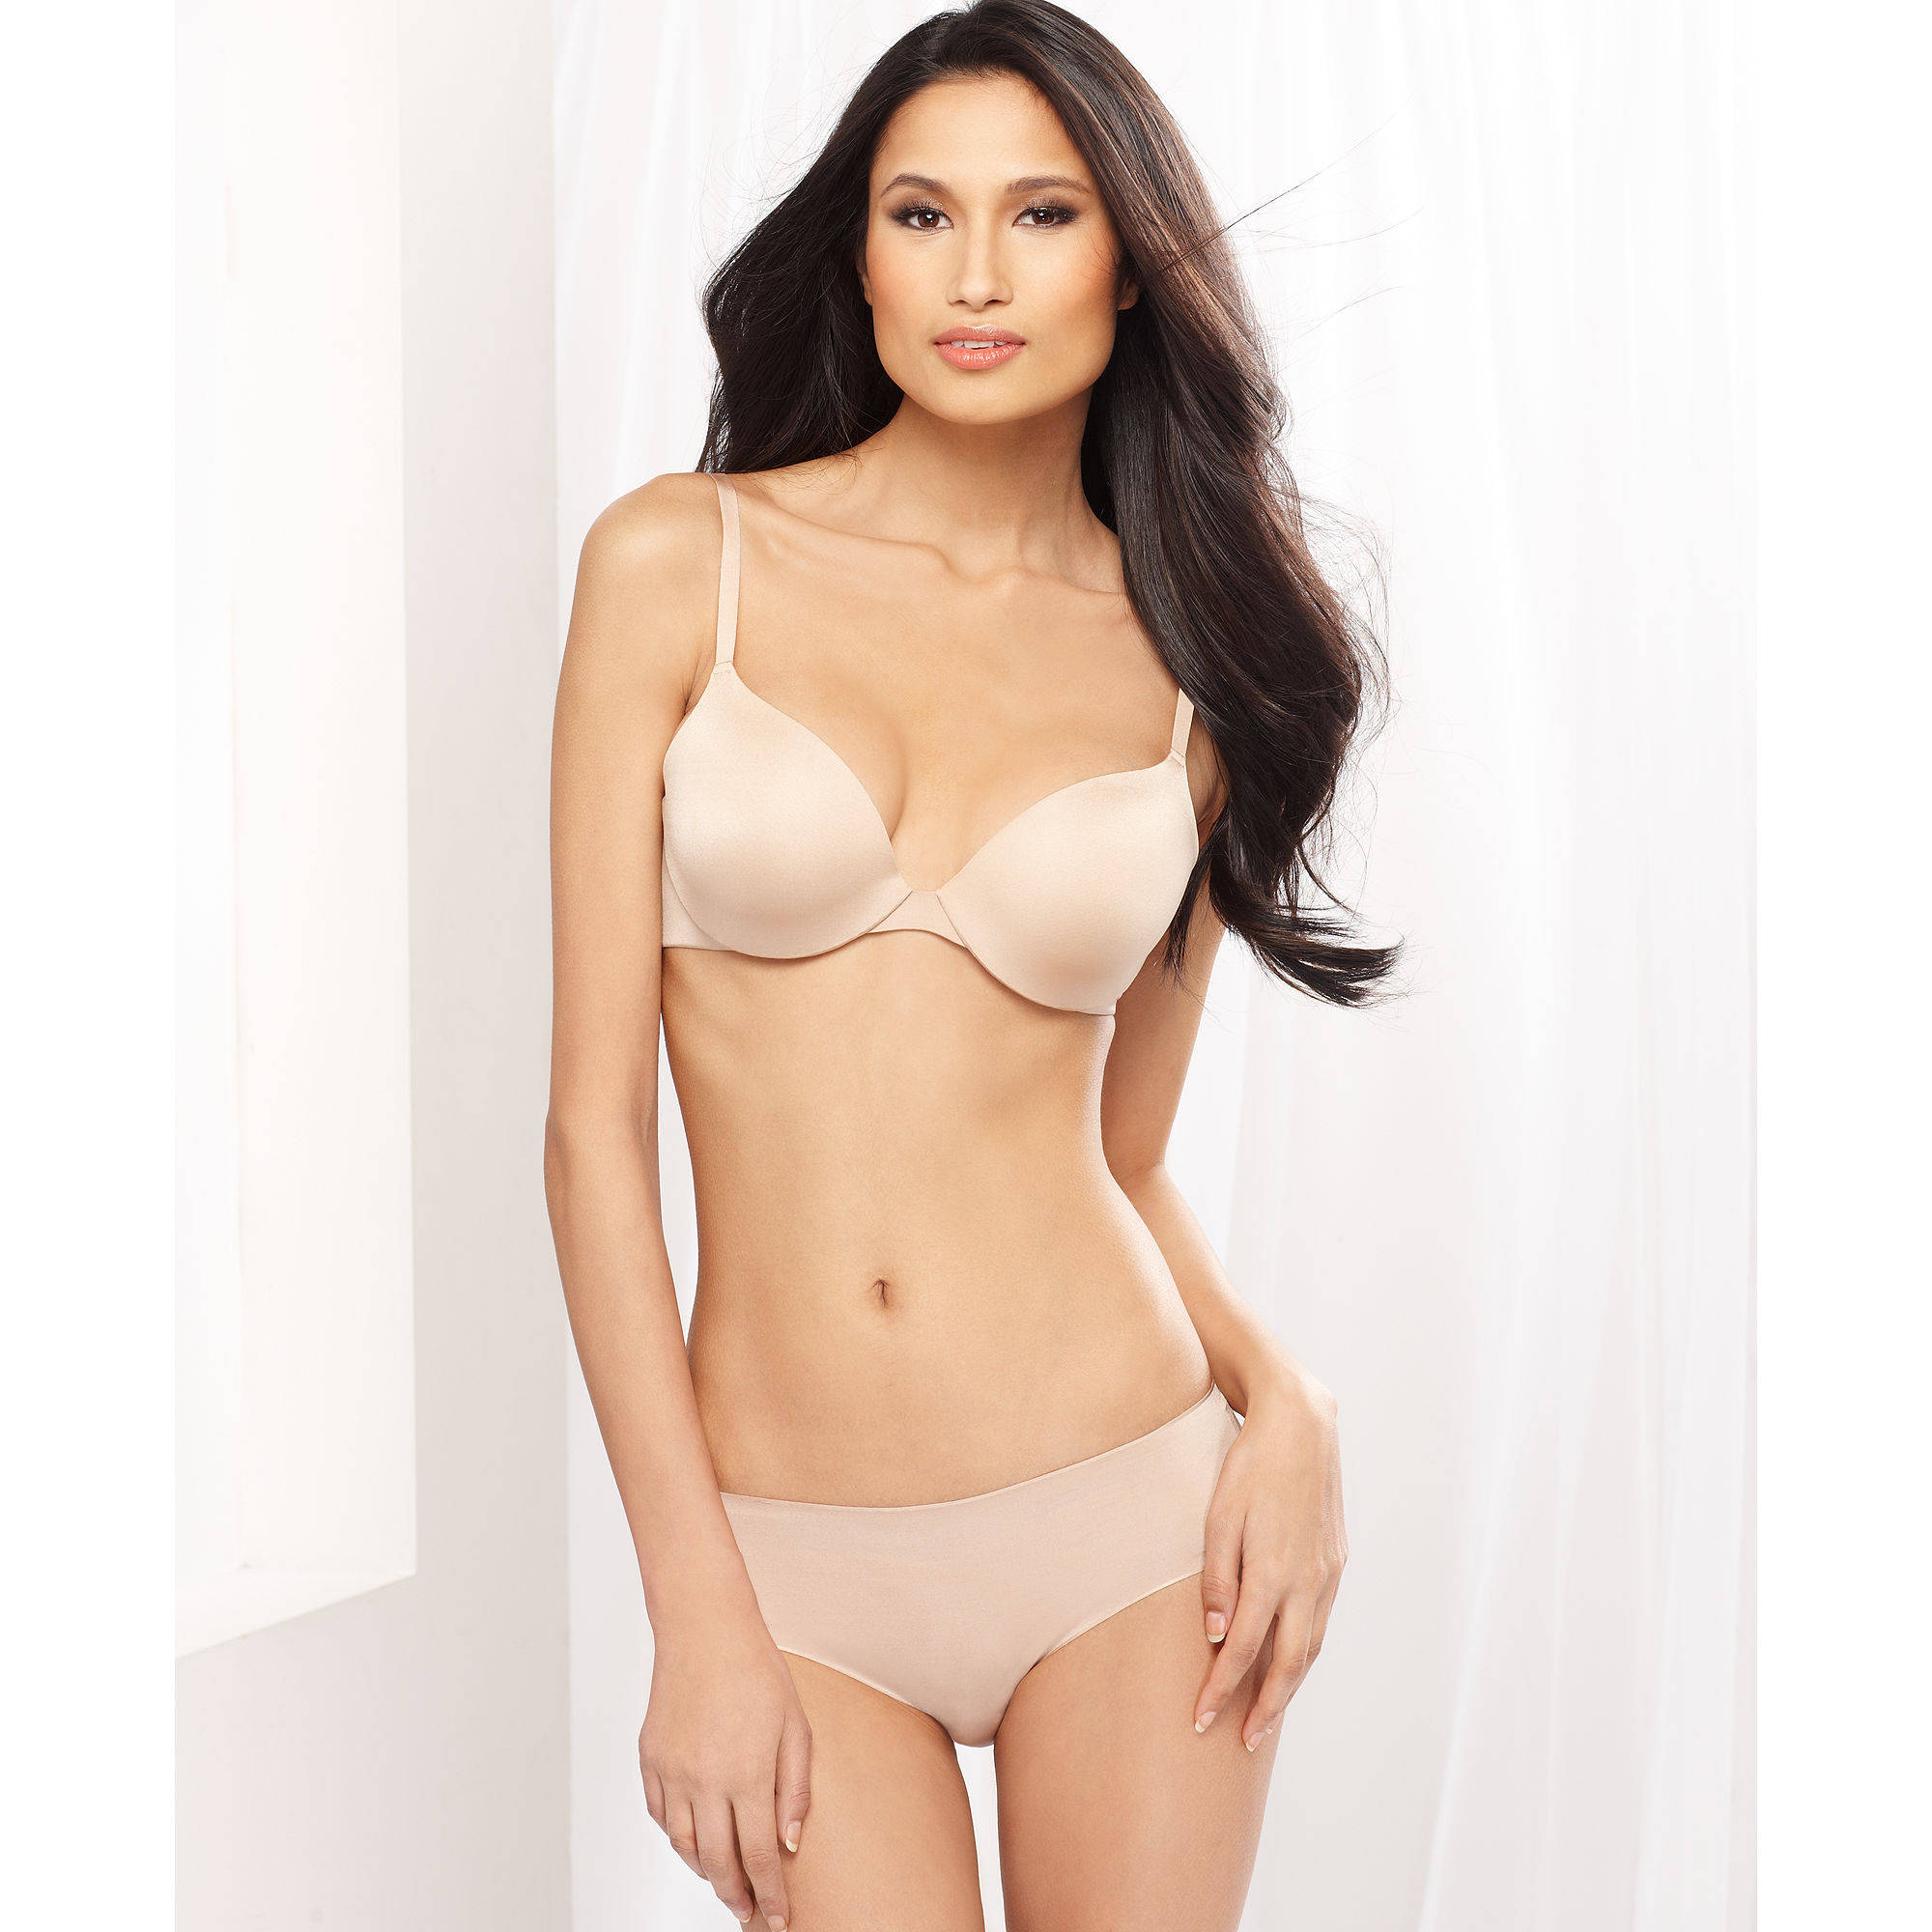 eb13adcd42919 Lyst - Felina Body Luxe Contour Bra in Natural